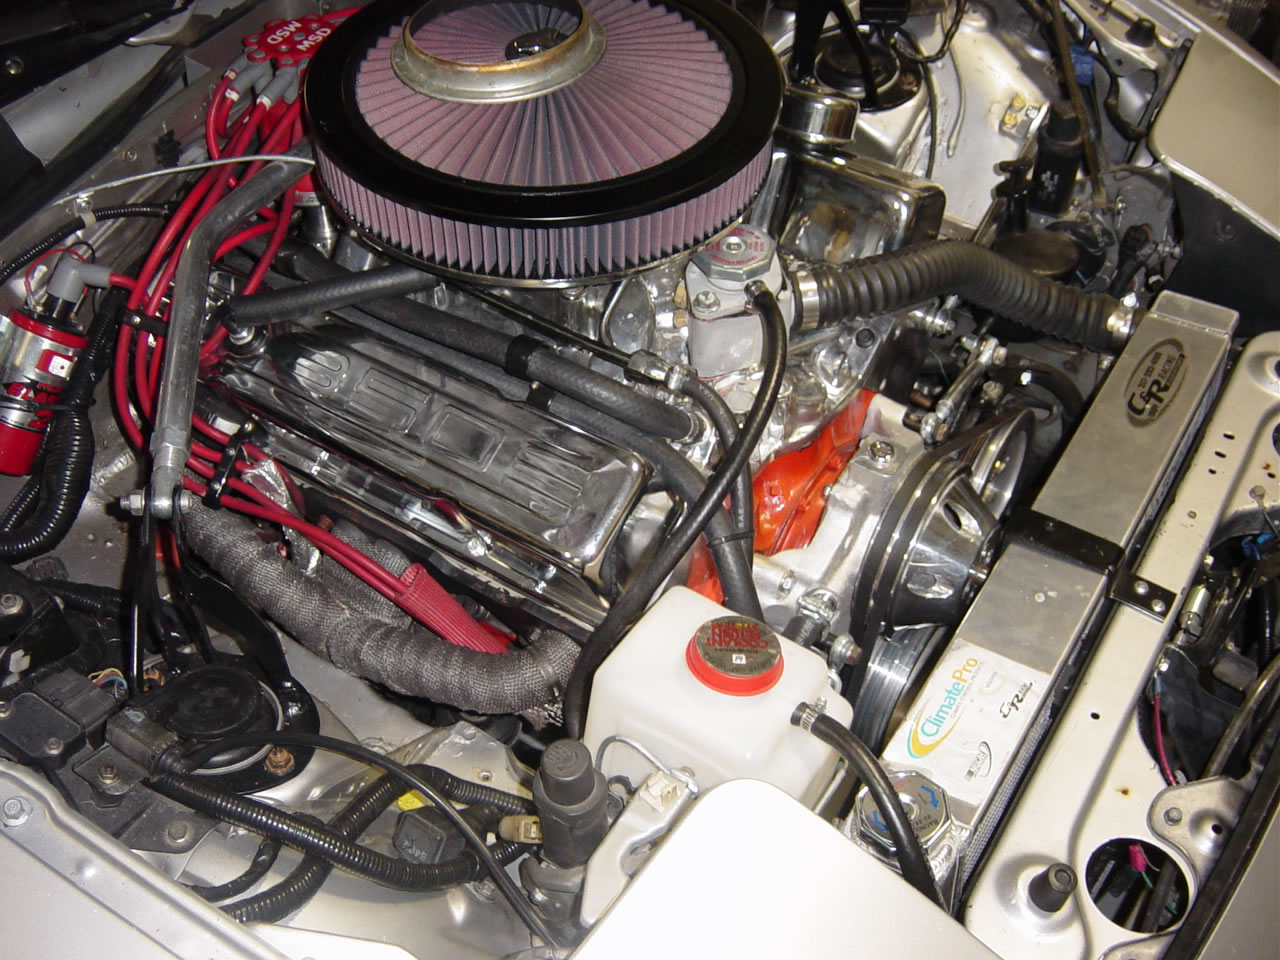 SR Racing: The Anatomy of a Racing Specialty Shop - Automotive ...